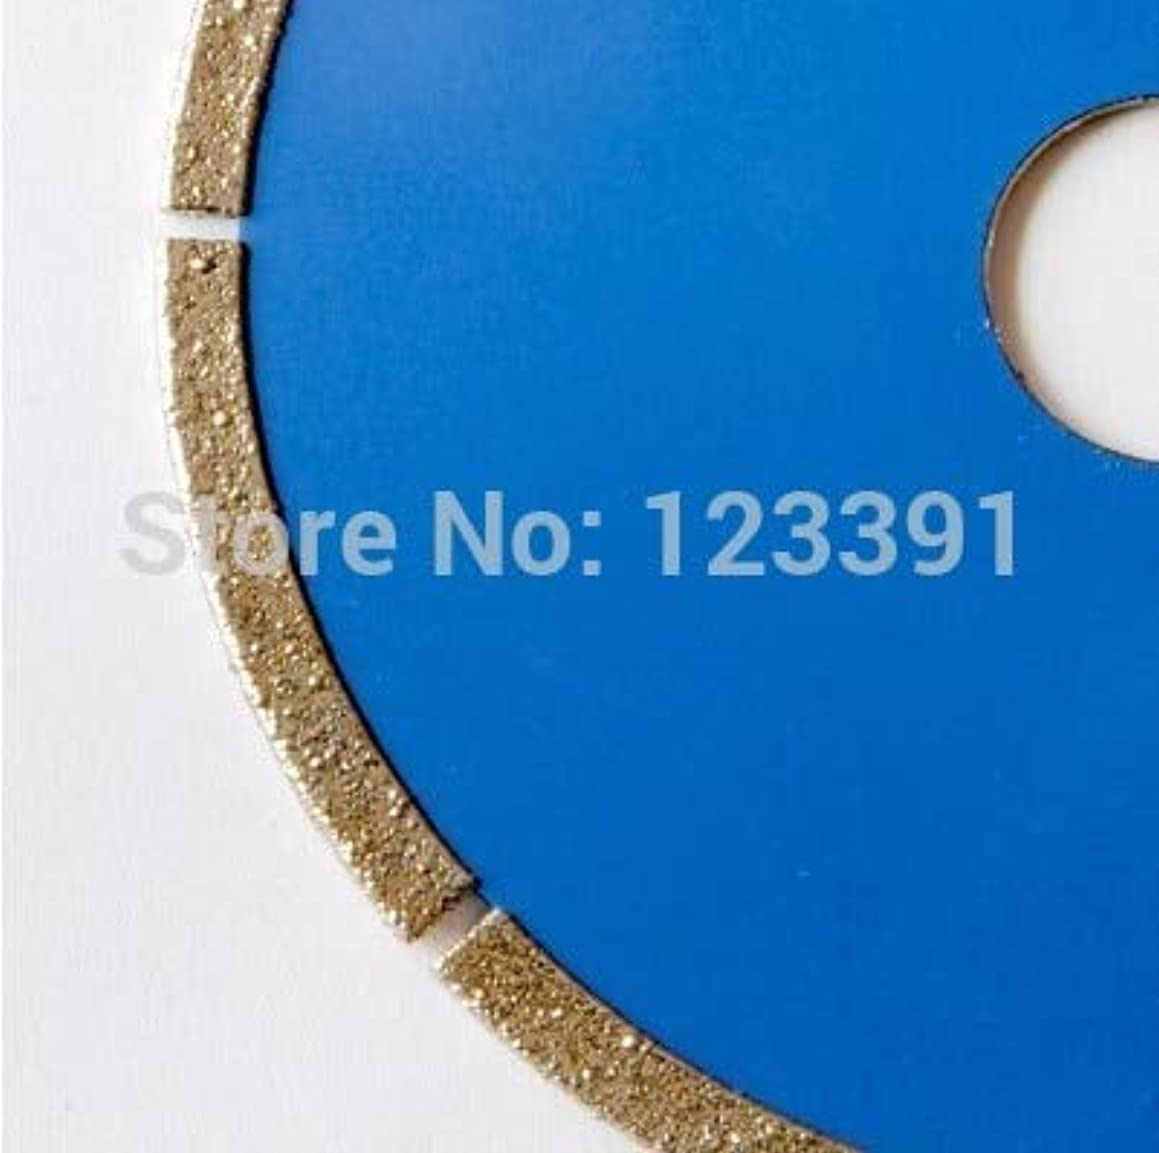 Maslin of 1pc of diamond wet cutting horn cutting marble tile saw blade diameter of 110mm202.0 5mm for marble cutting - (Outer Diameters: 110, Hole Diameter: 20, Thickness: 2.0mm)